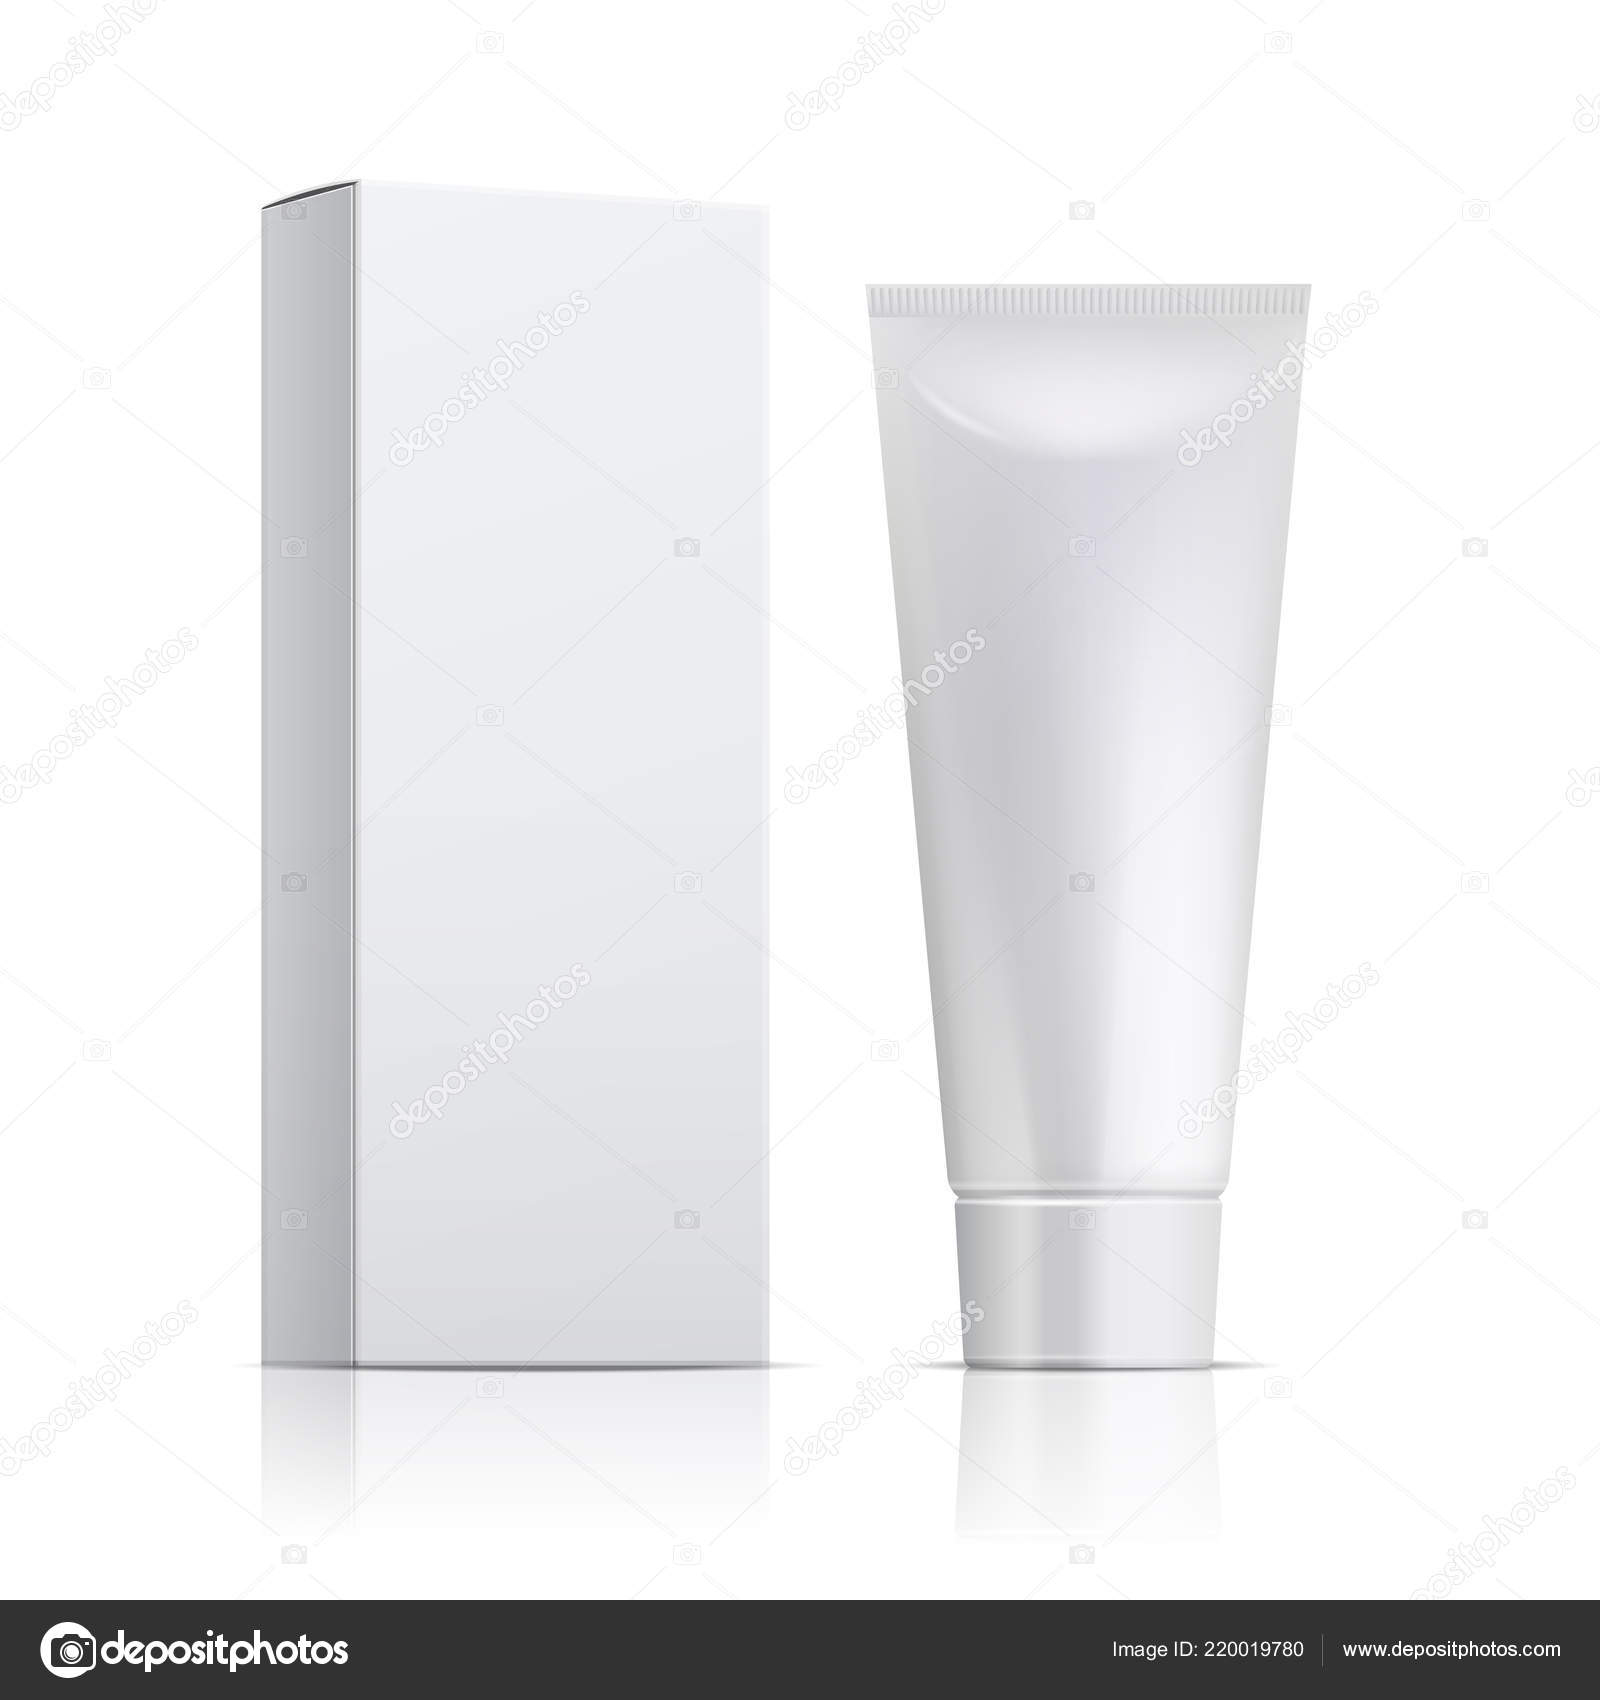 Cream Tube And Packaging Ointment Or Toothpaste Box Mockup 3d White Cosmetic Gel Vector Template Stock Vector C Microone 220019780